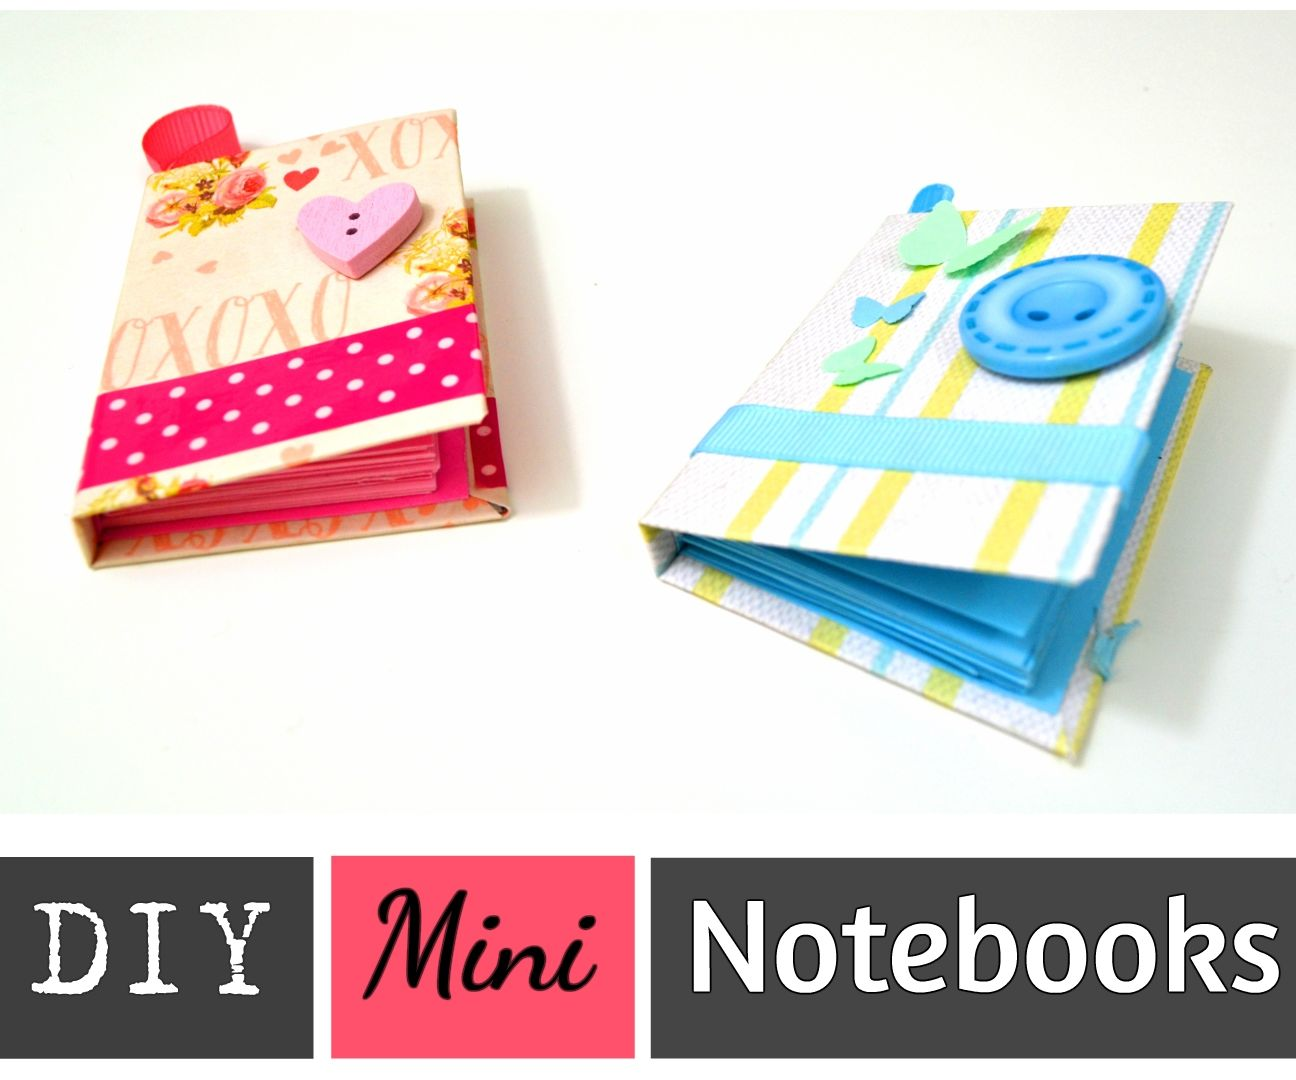 Make Your Own Mini Notebooks / POCKET - SIZED NOTEBOOKS WITH RECYCLED PAPER AND CARTOON - Best Out of Waste